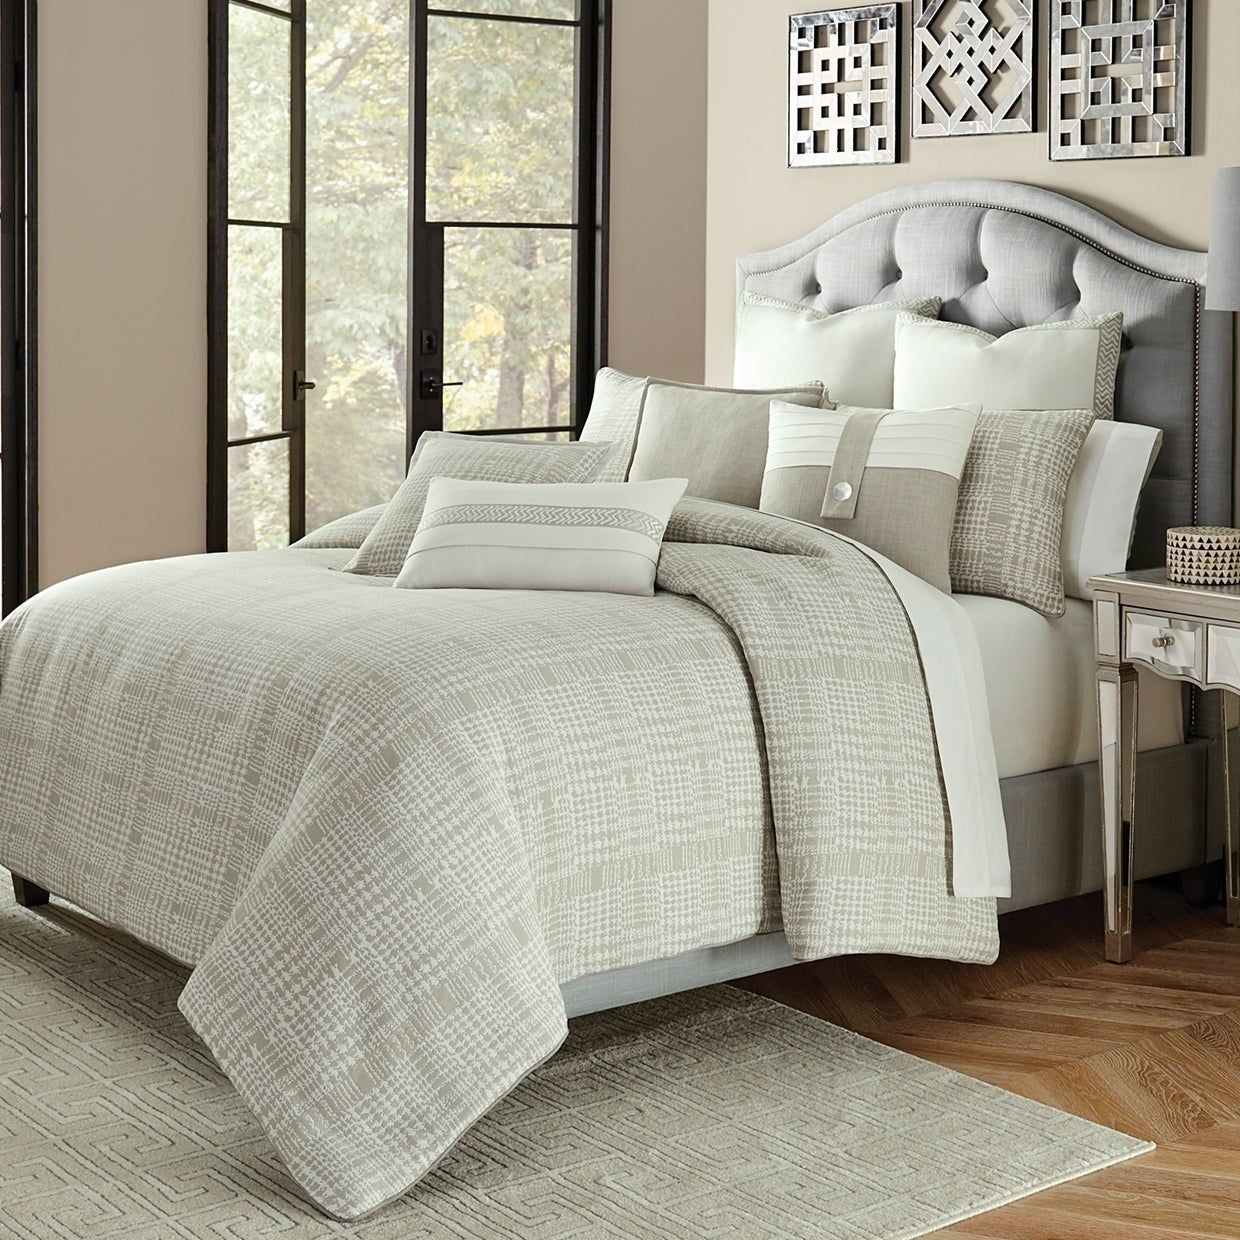 4 Piece Michael Amini Eden S Paradise Poster Bedroom Set: Julianna 10-Piece Gray King Comforter Set, Michael Amini